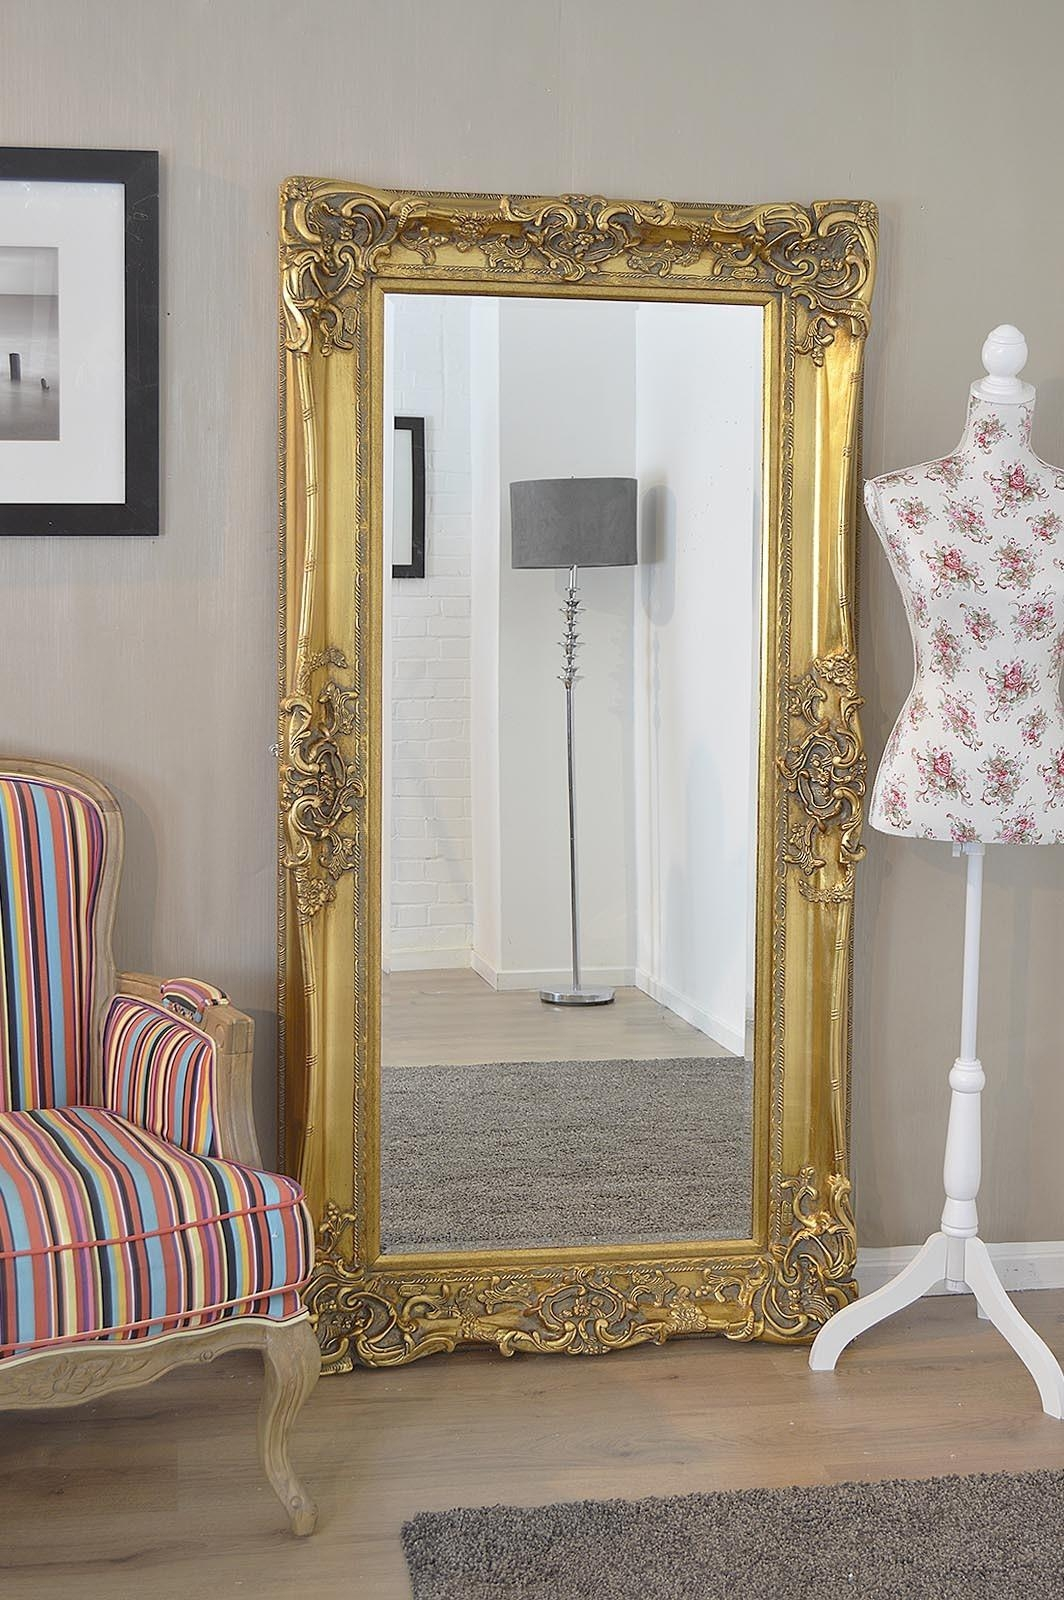 Shabby Chic Floor Standing Mirror 150 Beautiful Decoration Also Inside Ornate Floor Mirrors (View 5 of 20)